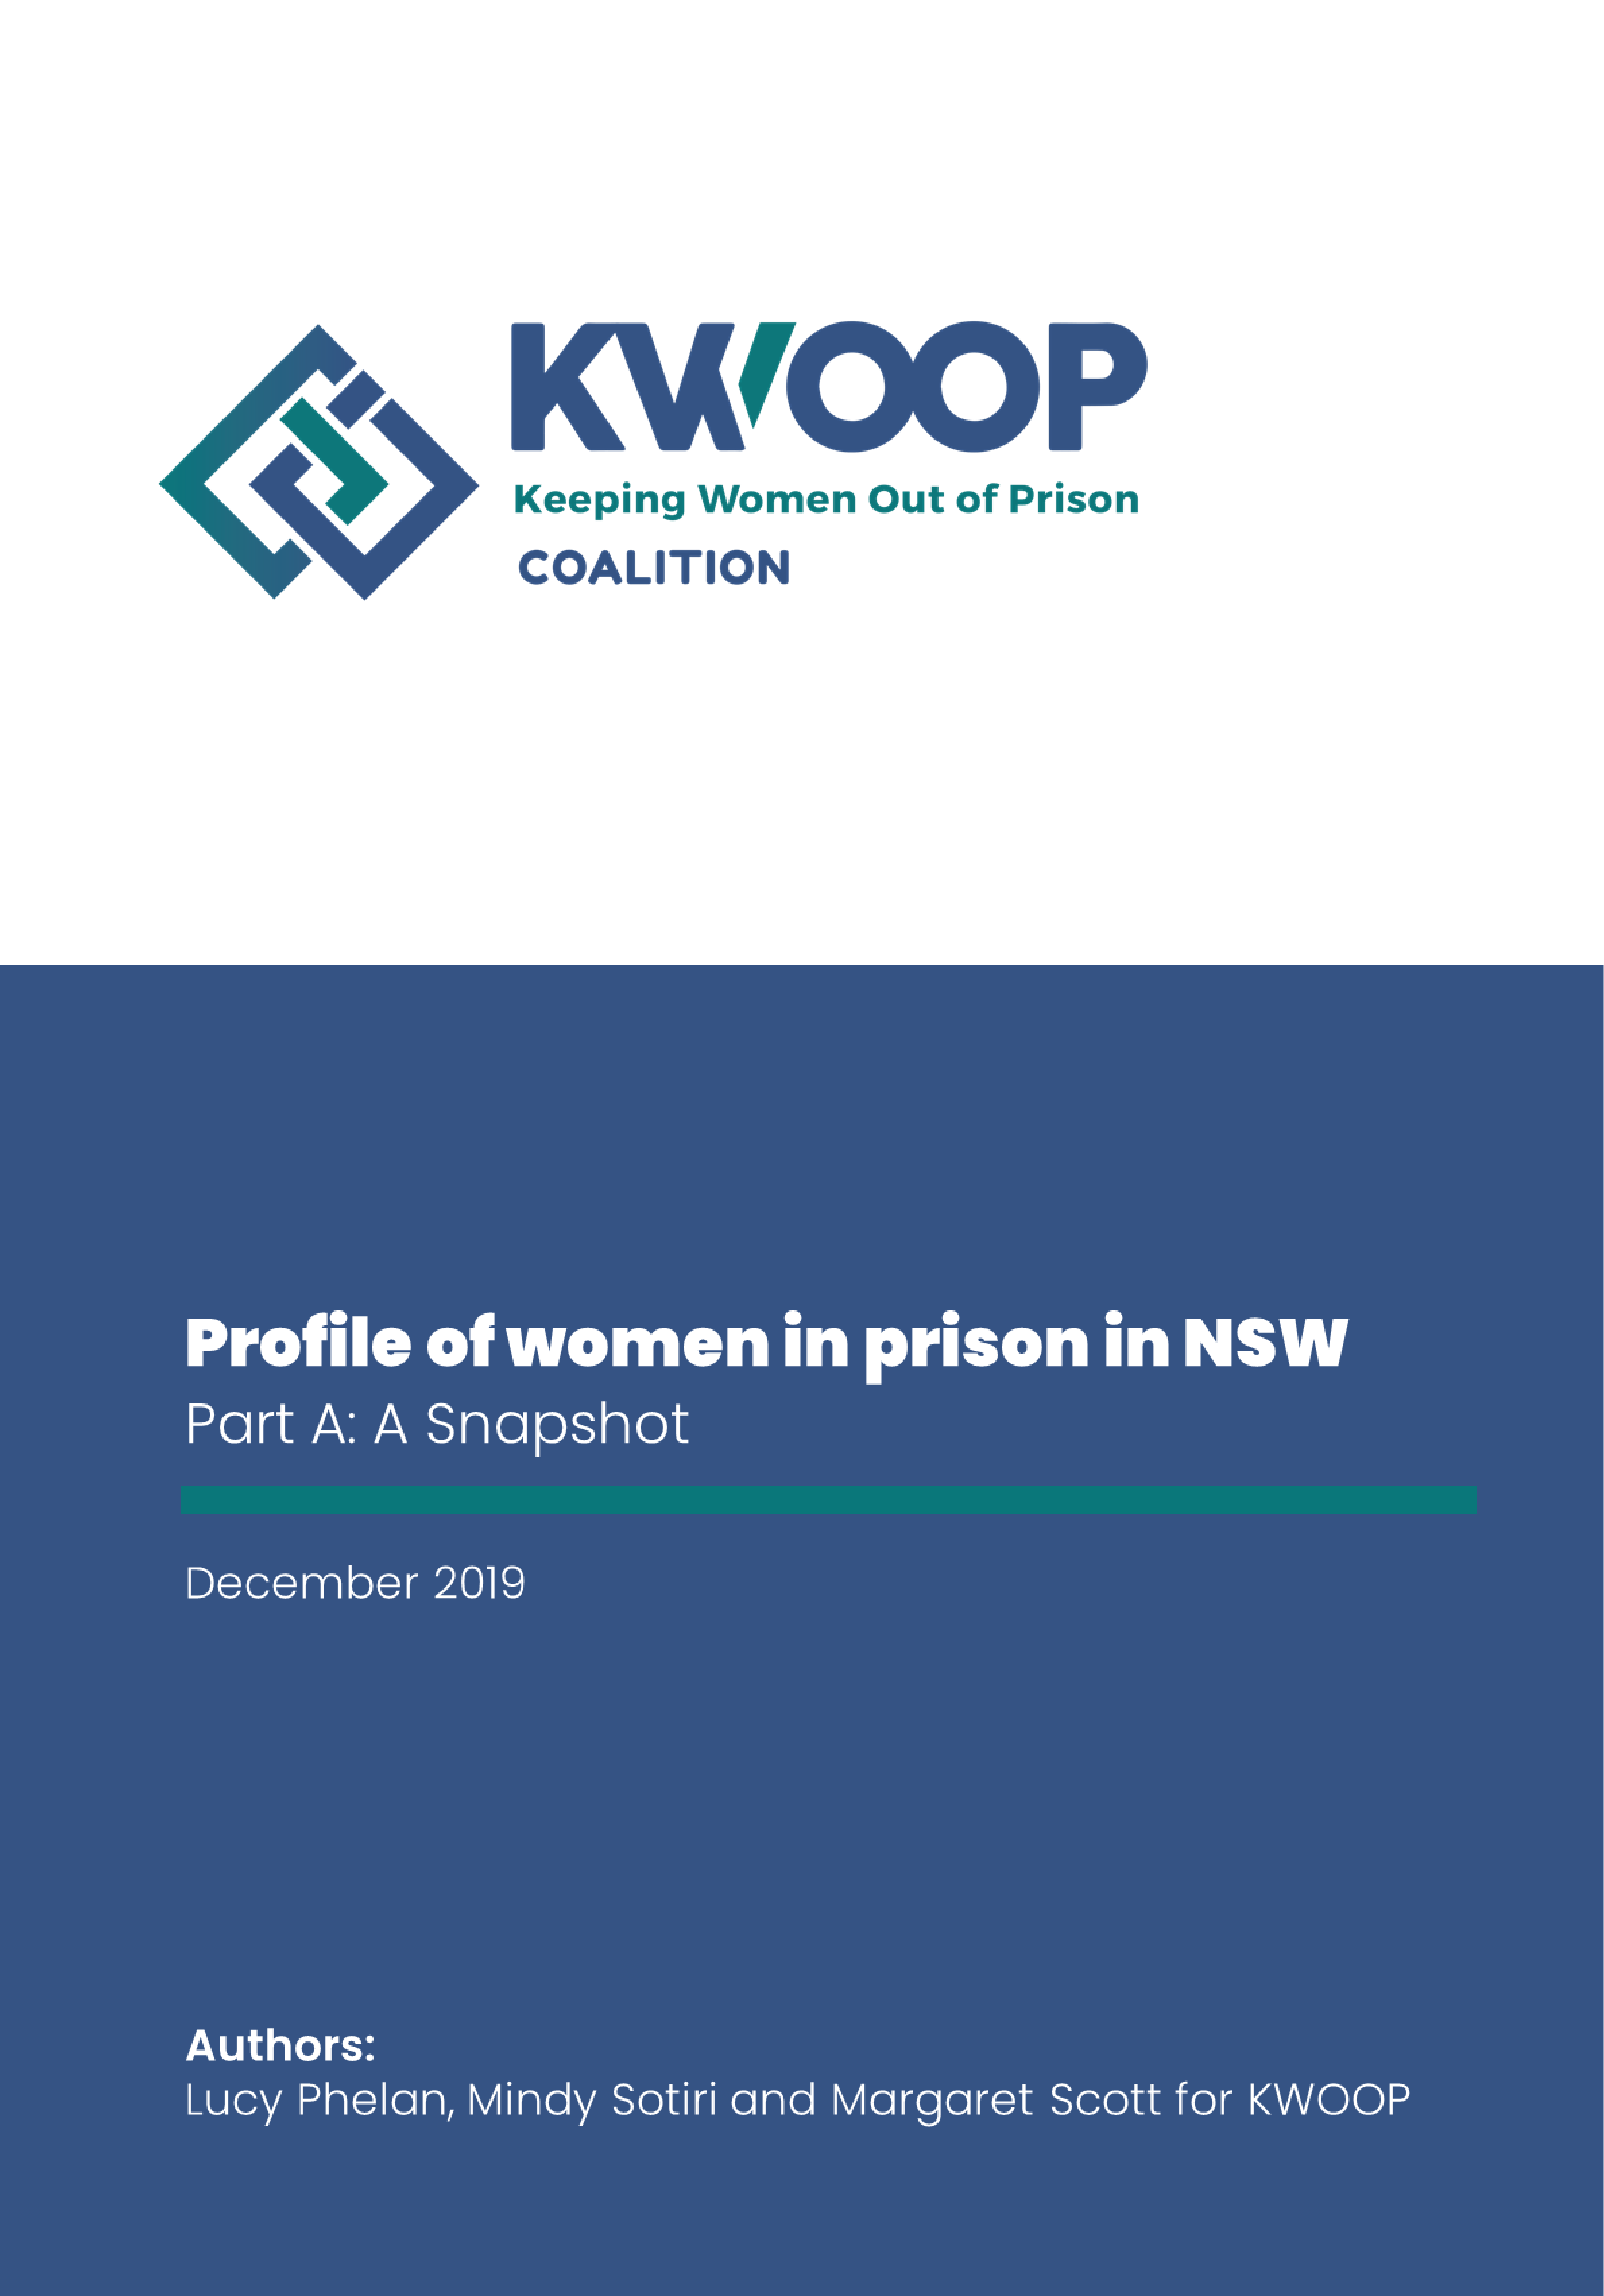 Keeping Women Out of Prison, June Oscar, Prison NSW, Women Prison NSW, Justice NSW, Rosalind Strong,